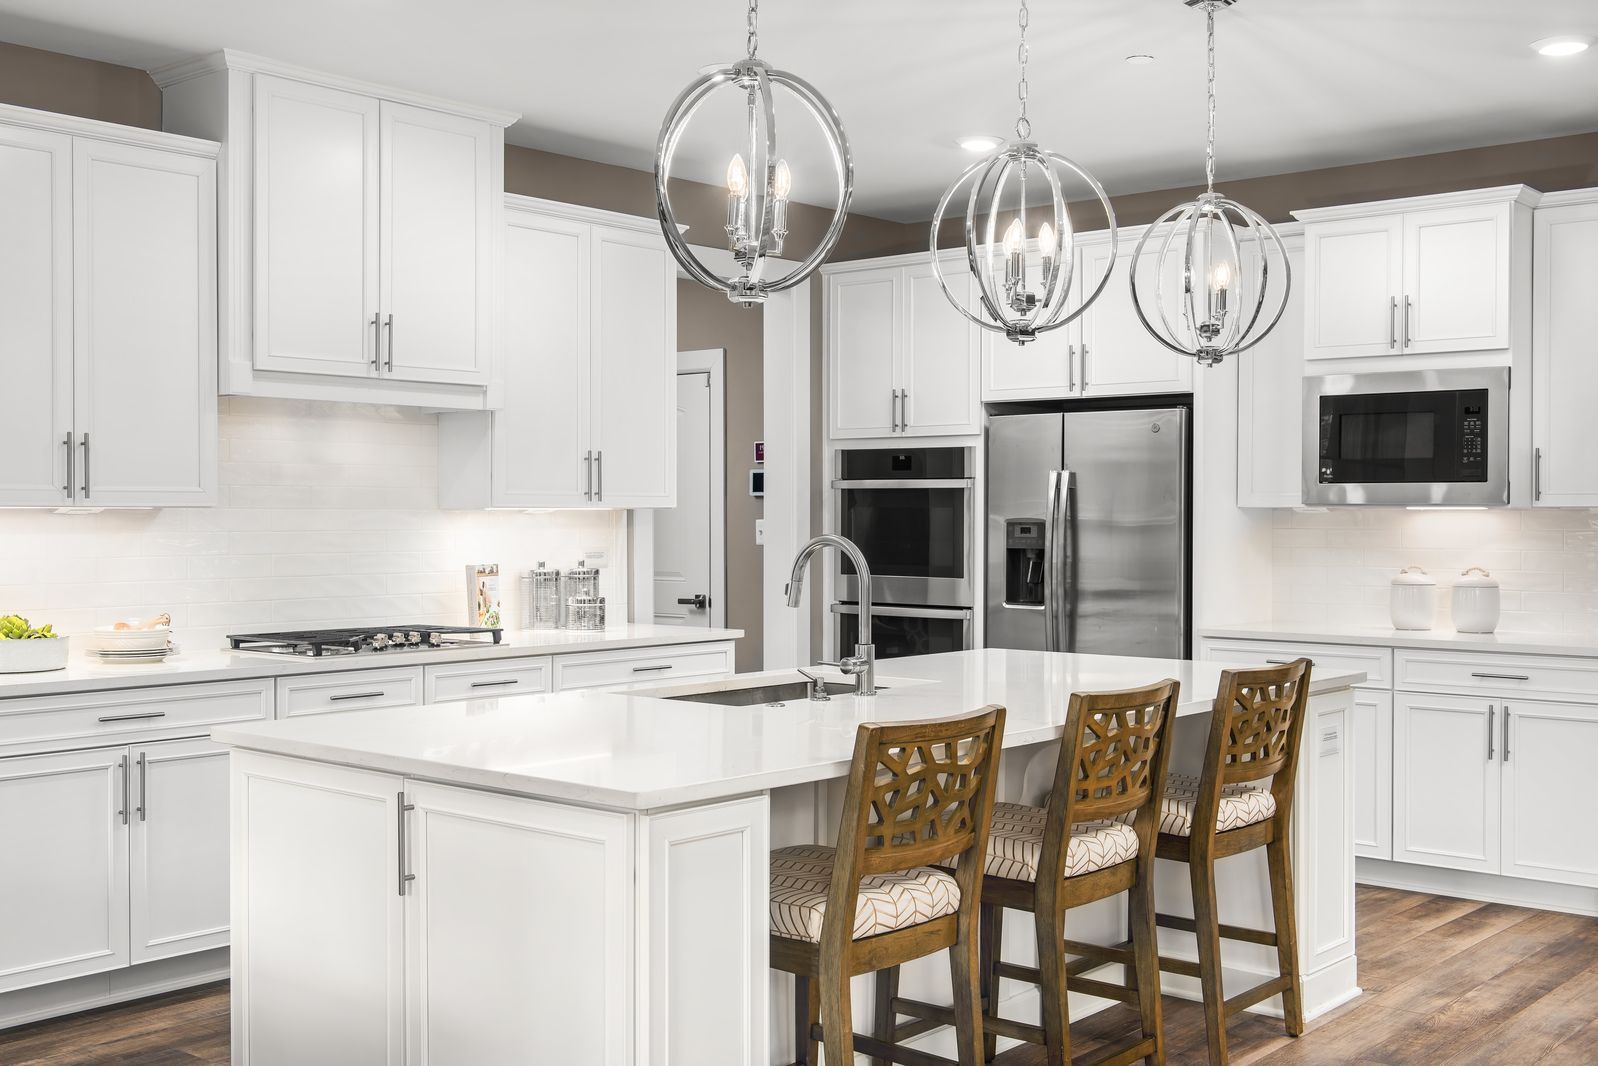 Kitchen featured in the Longwood By NVHomes in Washington, MD